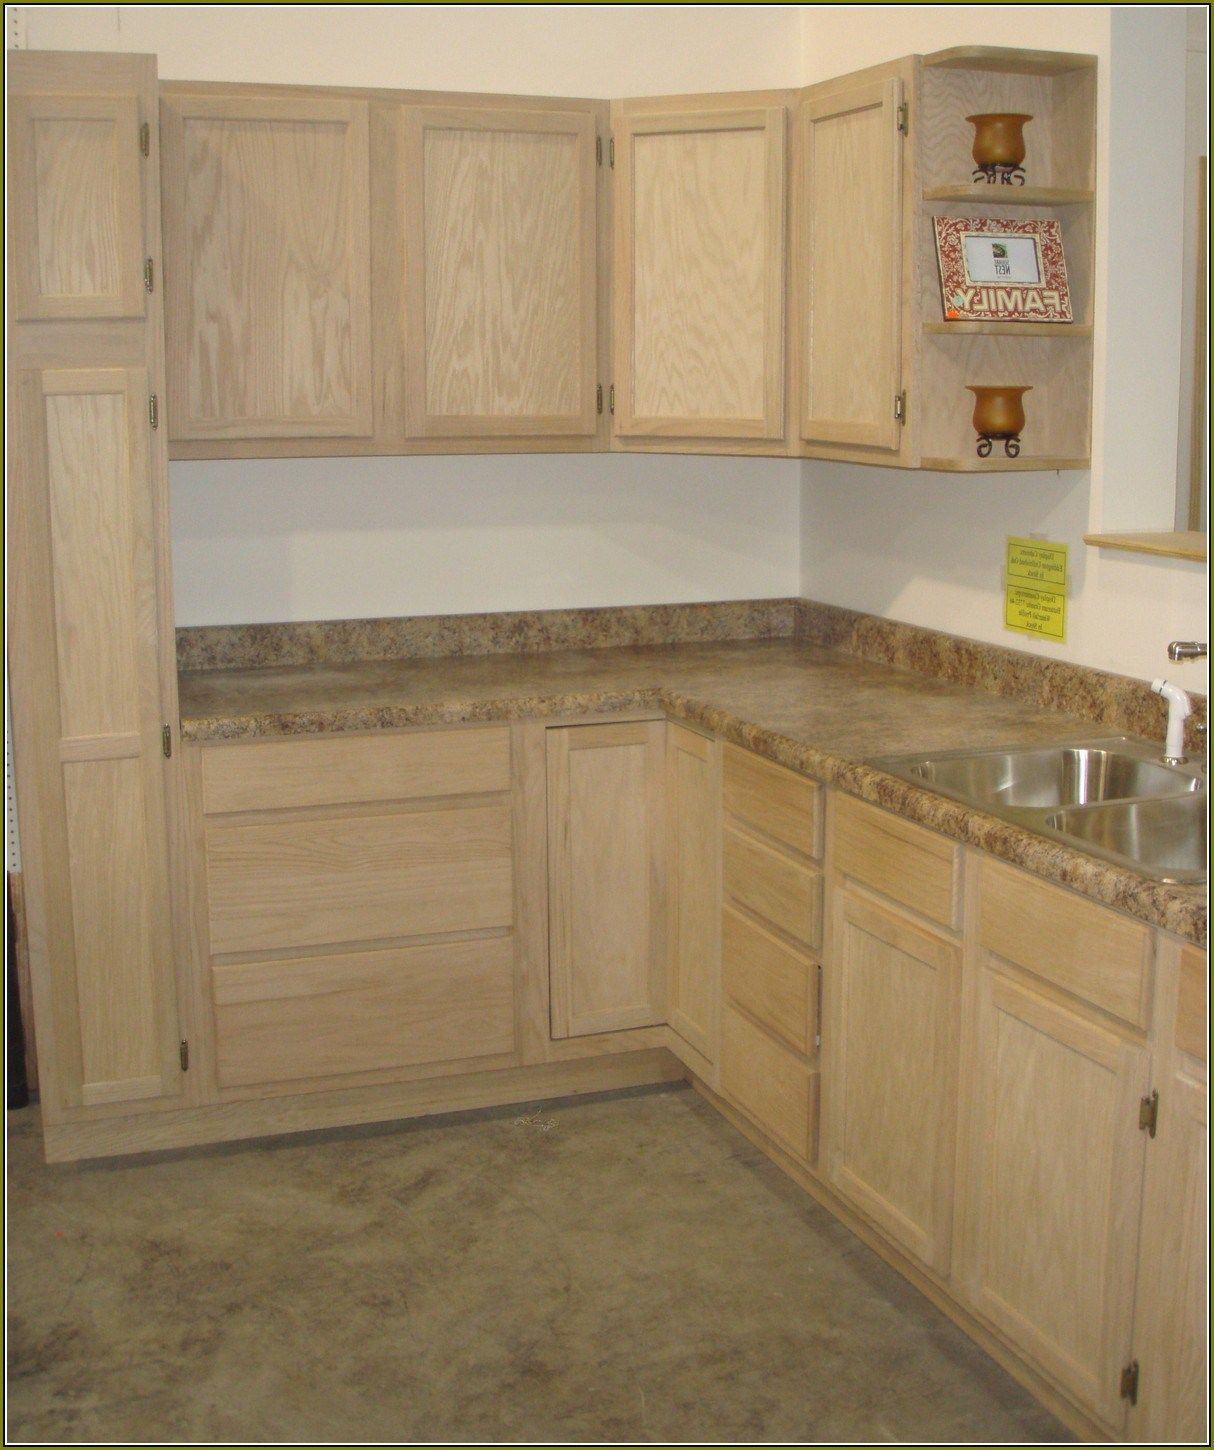 Home Improvements Refference Unfinished Pine Cabinets Home Depot Kitchen Cabinets As Kitchen Cabinets Home Depot Home Depot Kitchen Unfinished Kitchen Cabinets